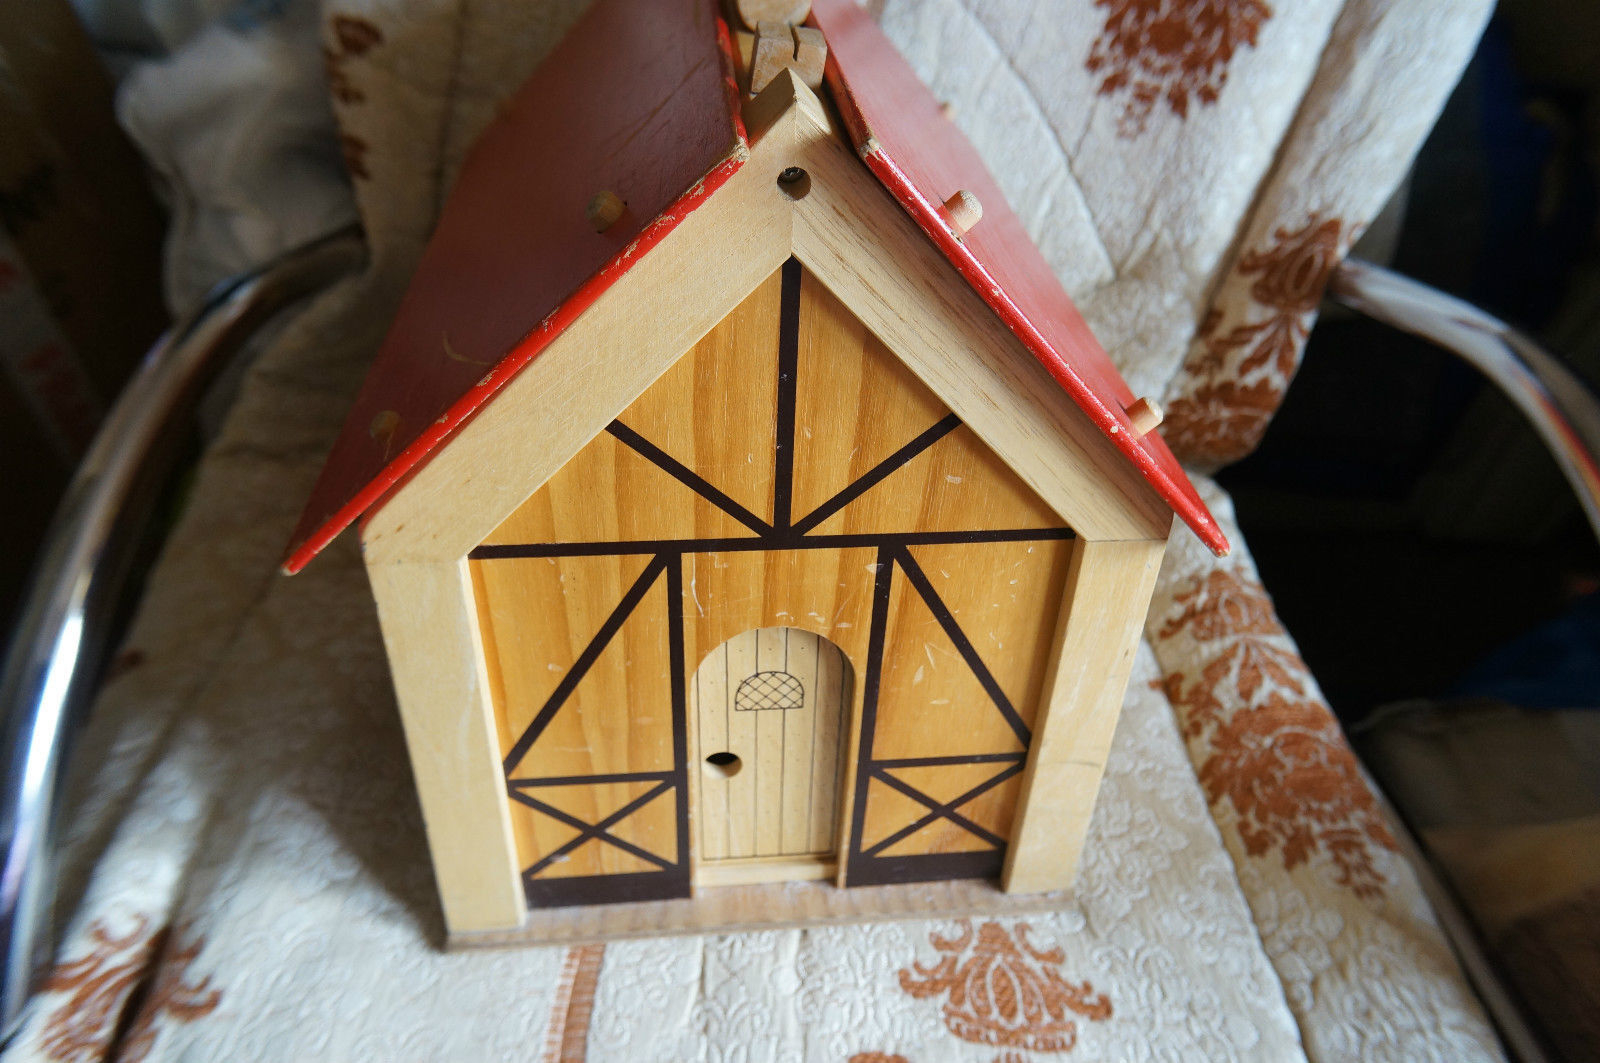 'VOILA' Wooden Doll House + pieces and dolls inc wizard,rare,vintage,collectors